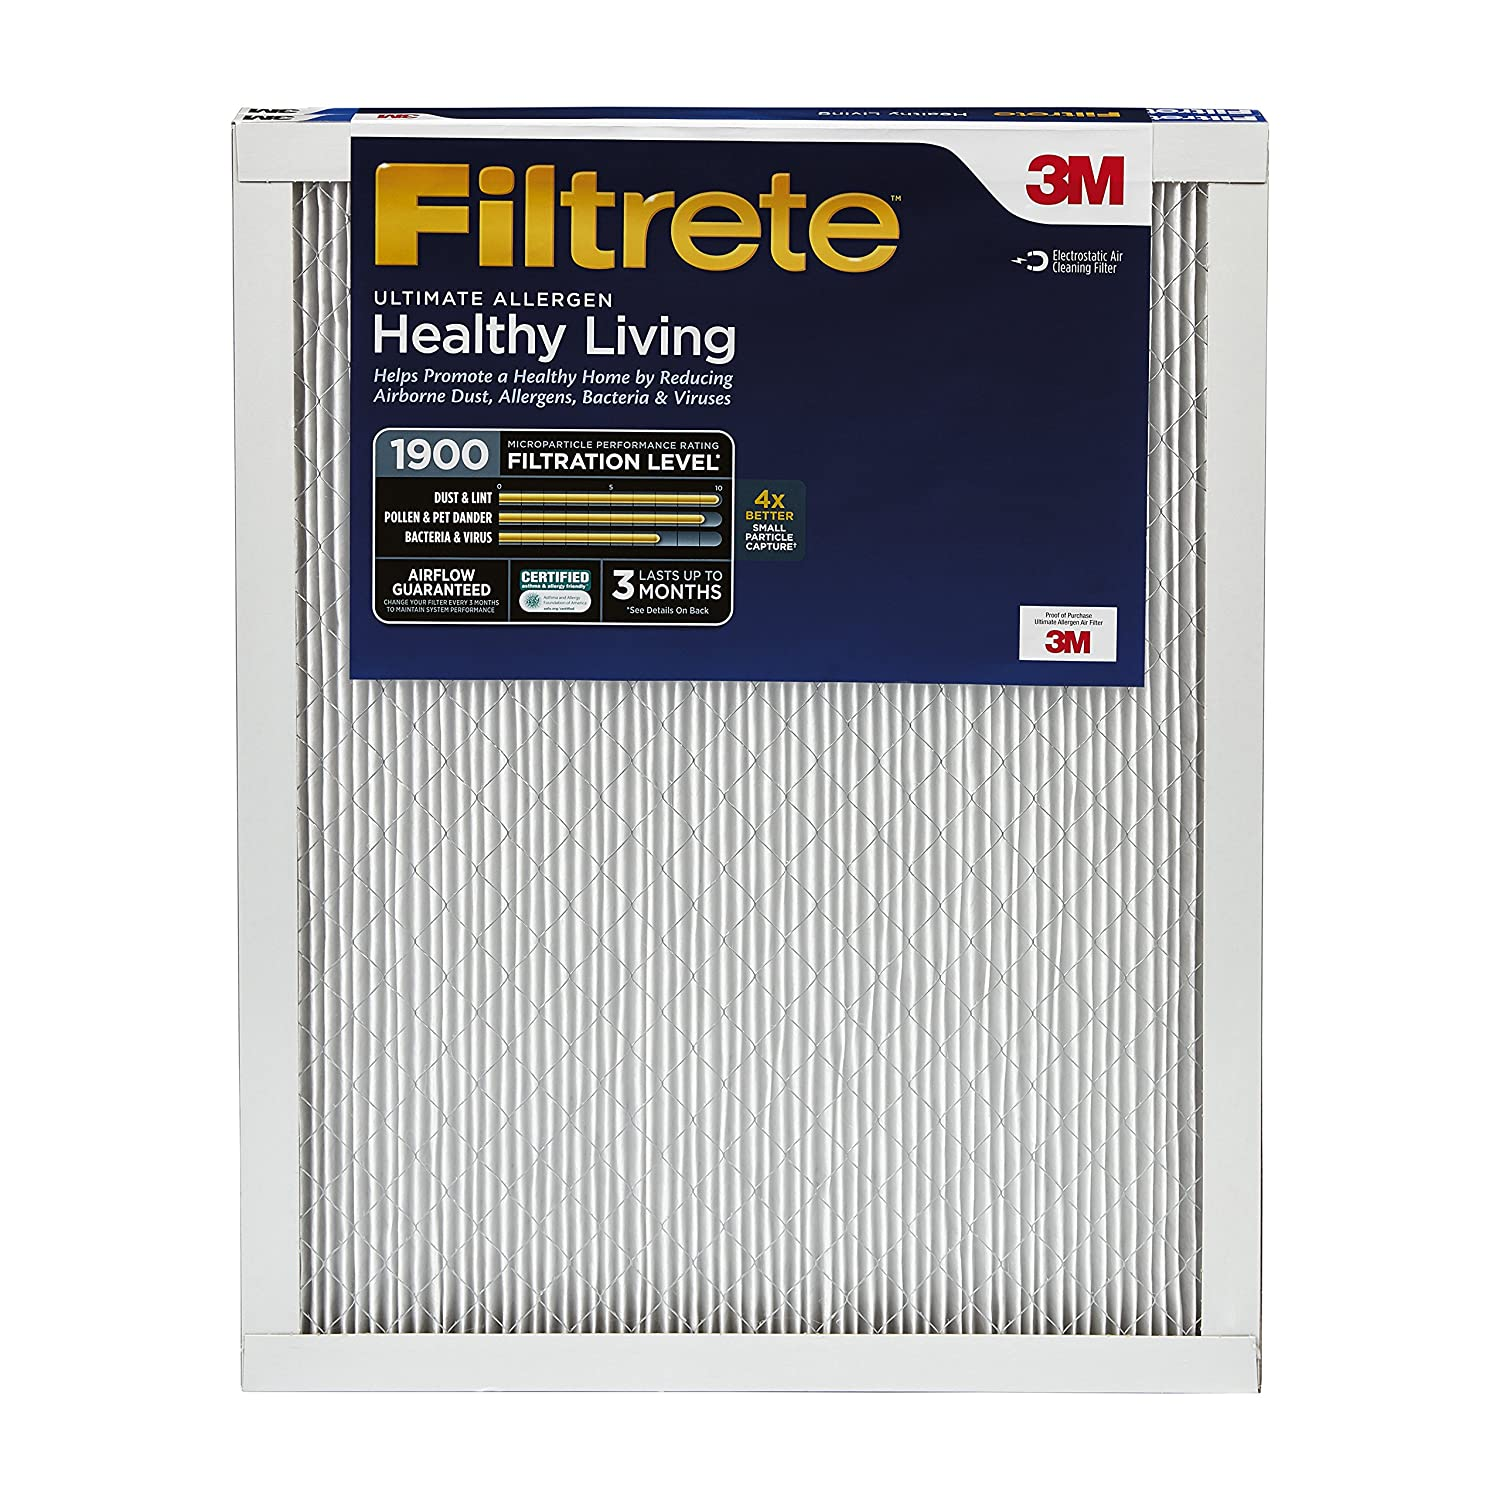 2. Filtrete 14x30x1, AC Furnace Air Filter, MPR 1900, Healthy Living Ultimate Allergen, 2-Pack